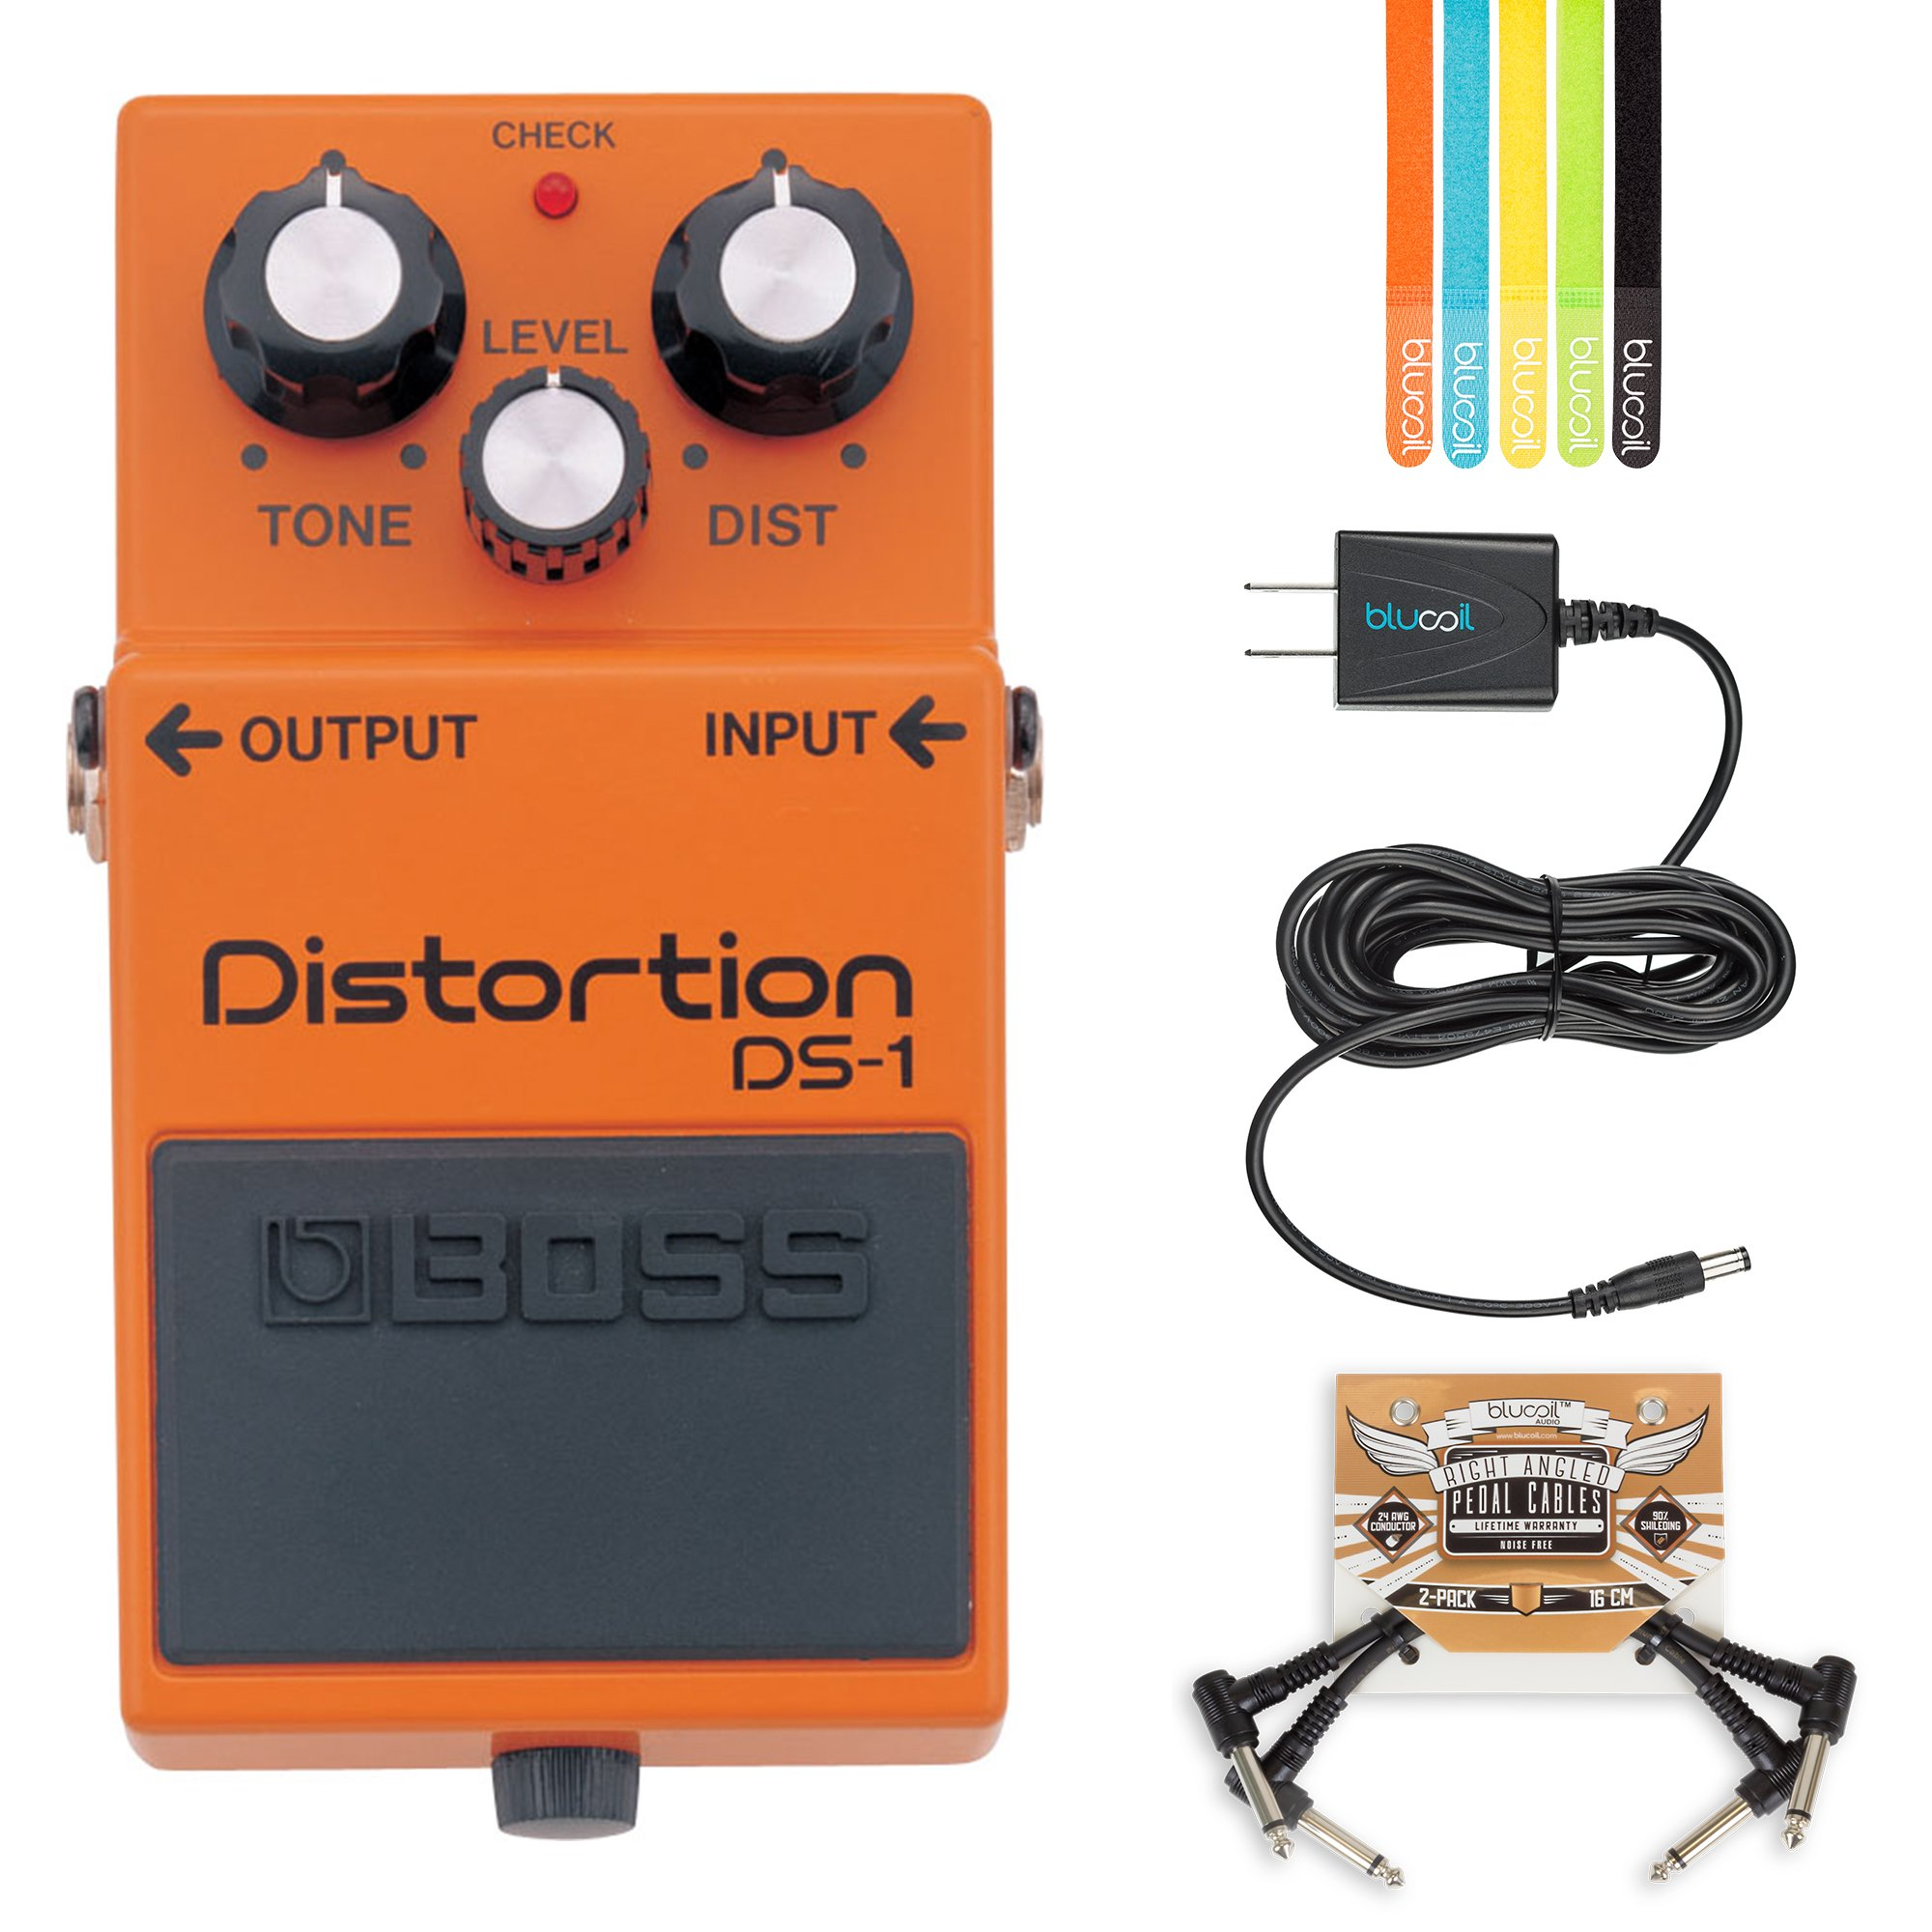 BOSS DS-1 Distortion Pedal BUNDLED WITH 2 Pack of Blucoil Pedal Patch Cables, Power Supply Slim AC/DC Adapter for 9 Volt DC 670mA AND 5-Pack of Cable Ties